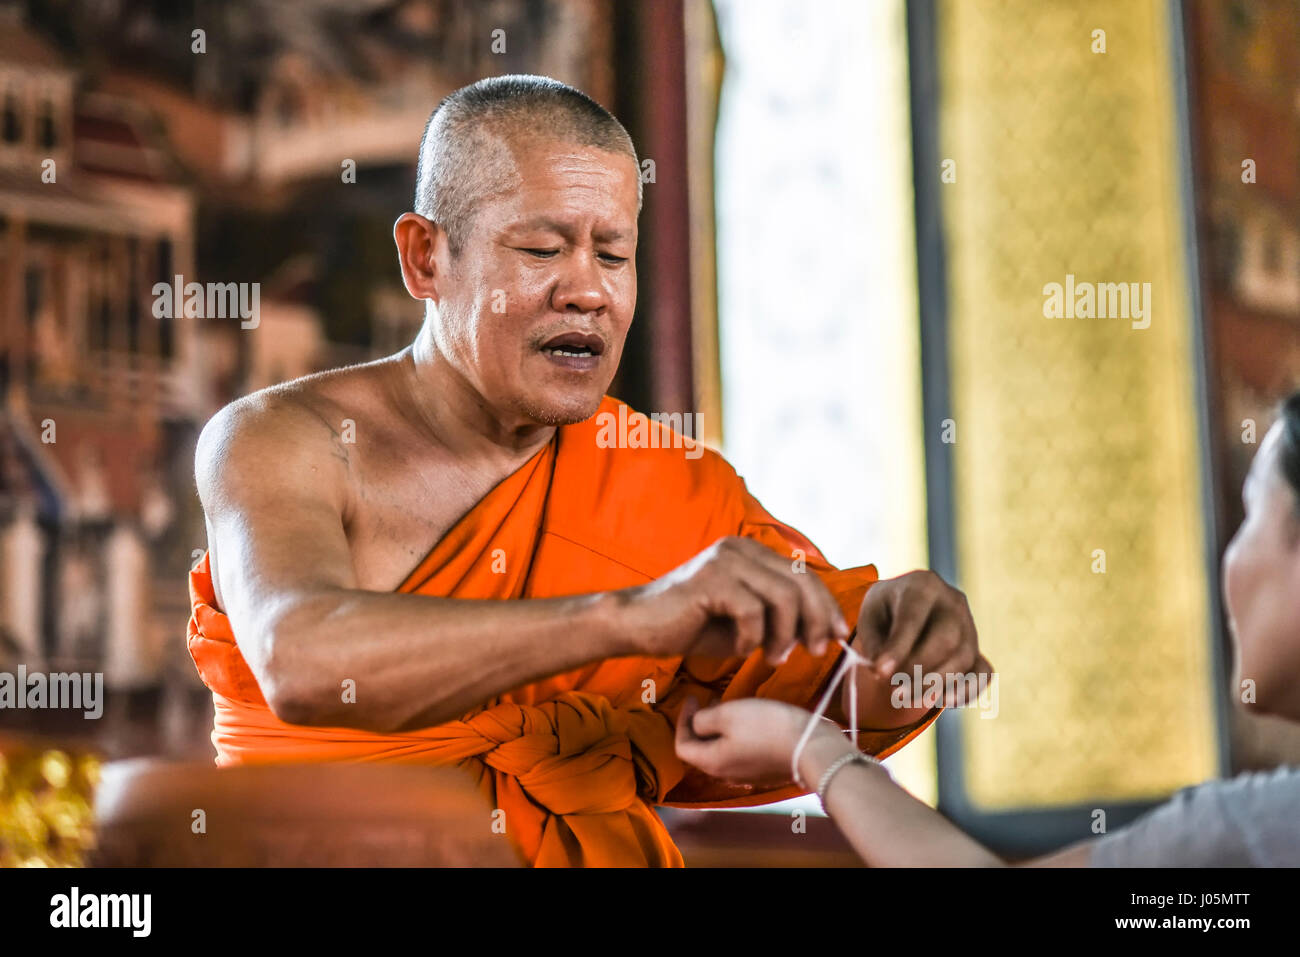 Bangkok, Thailand, March 4, 2016: Monk tieding up a holy thread on a hand in the temple. - Stock Image